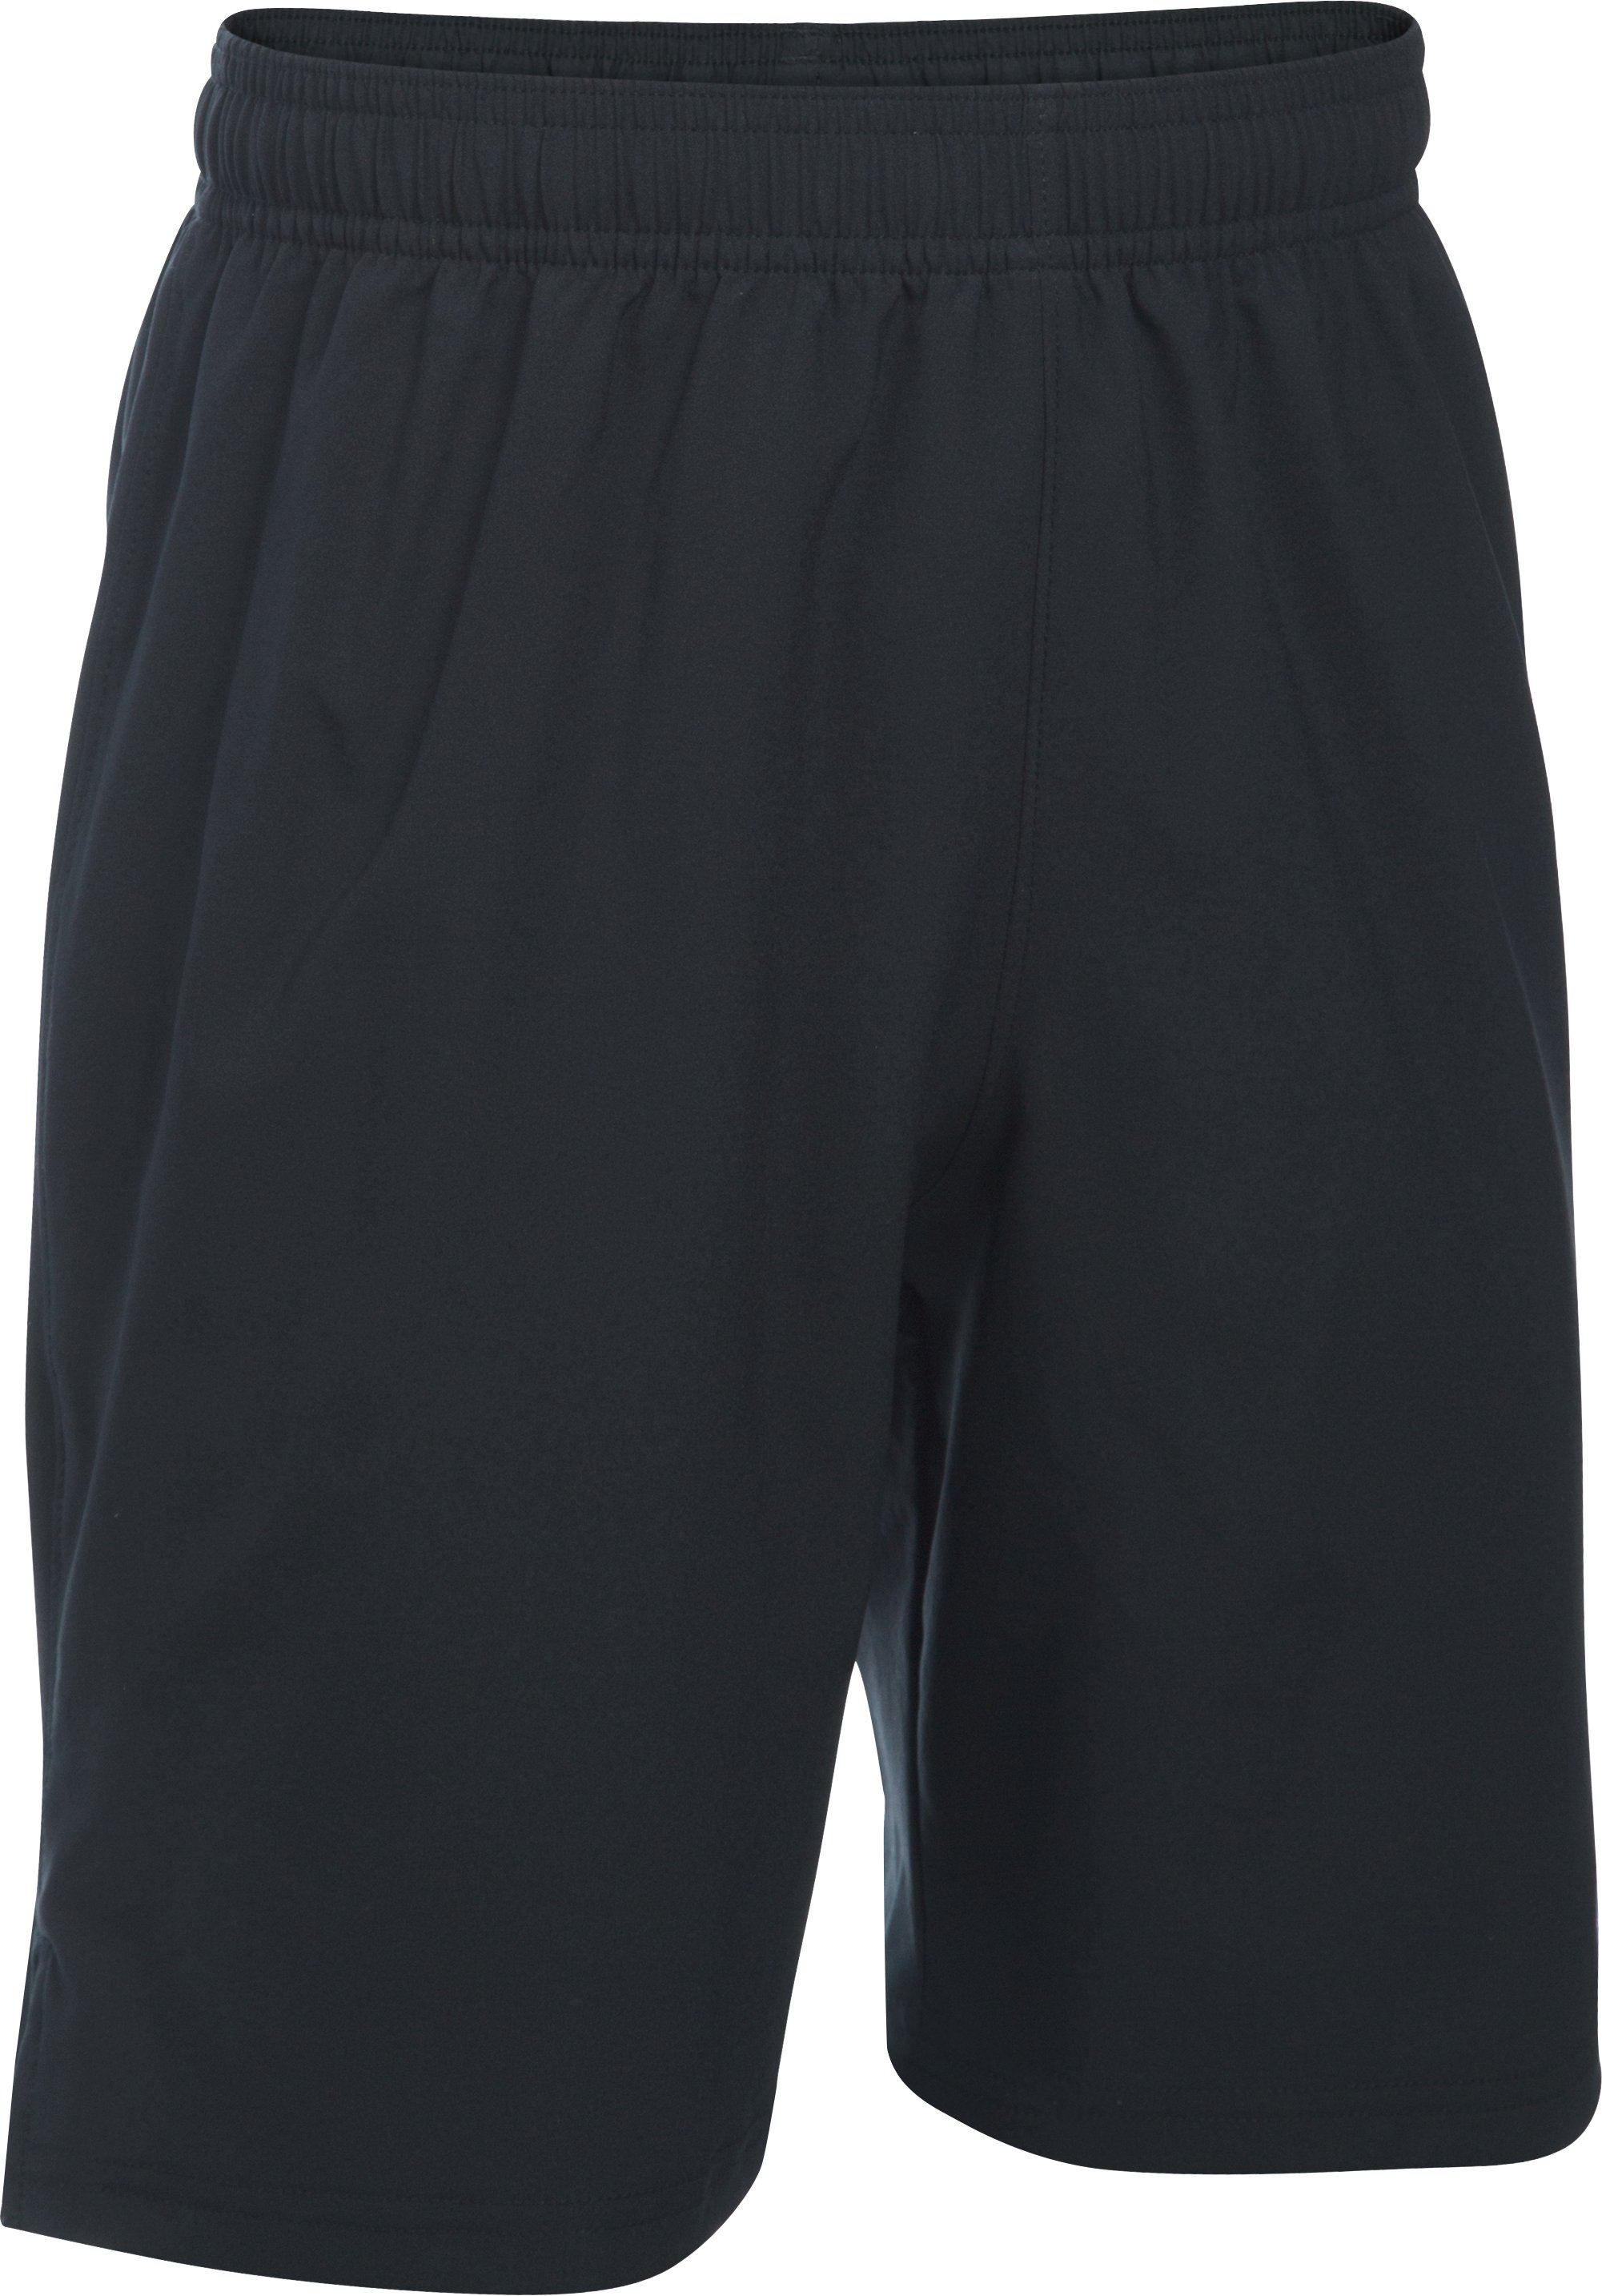 Boys' UA Hustle Shorts, Black